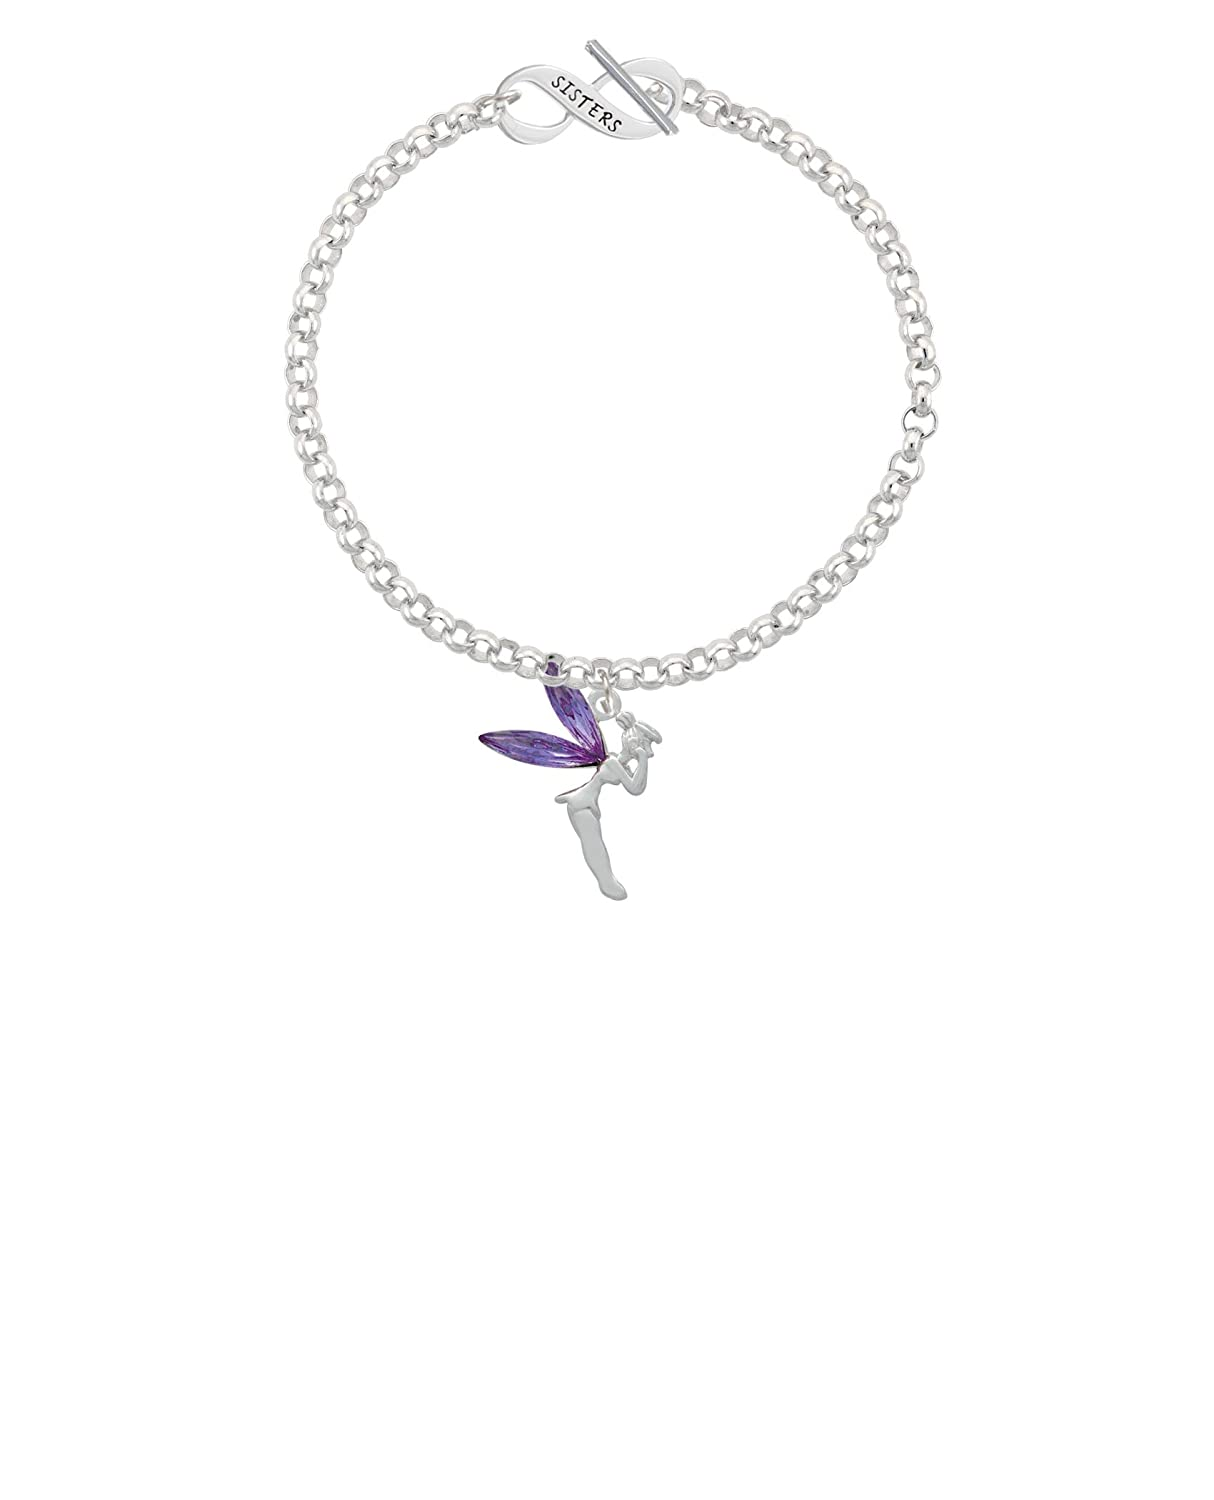 8 Silvertone Large Fairy with Purple Wings Sisters Infinity Toggle Chain Bracelet